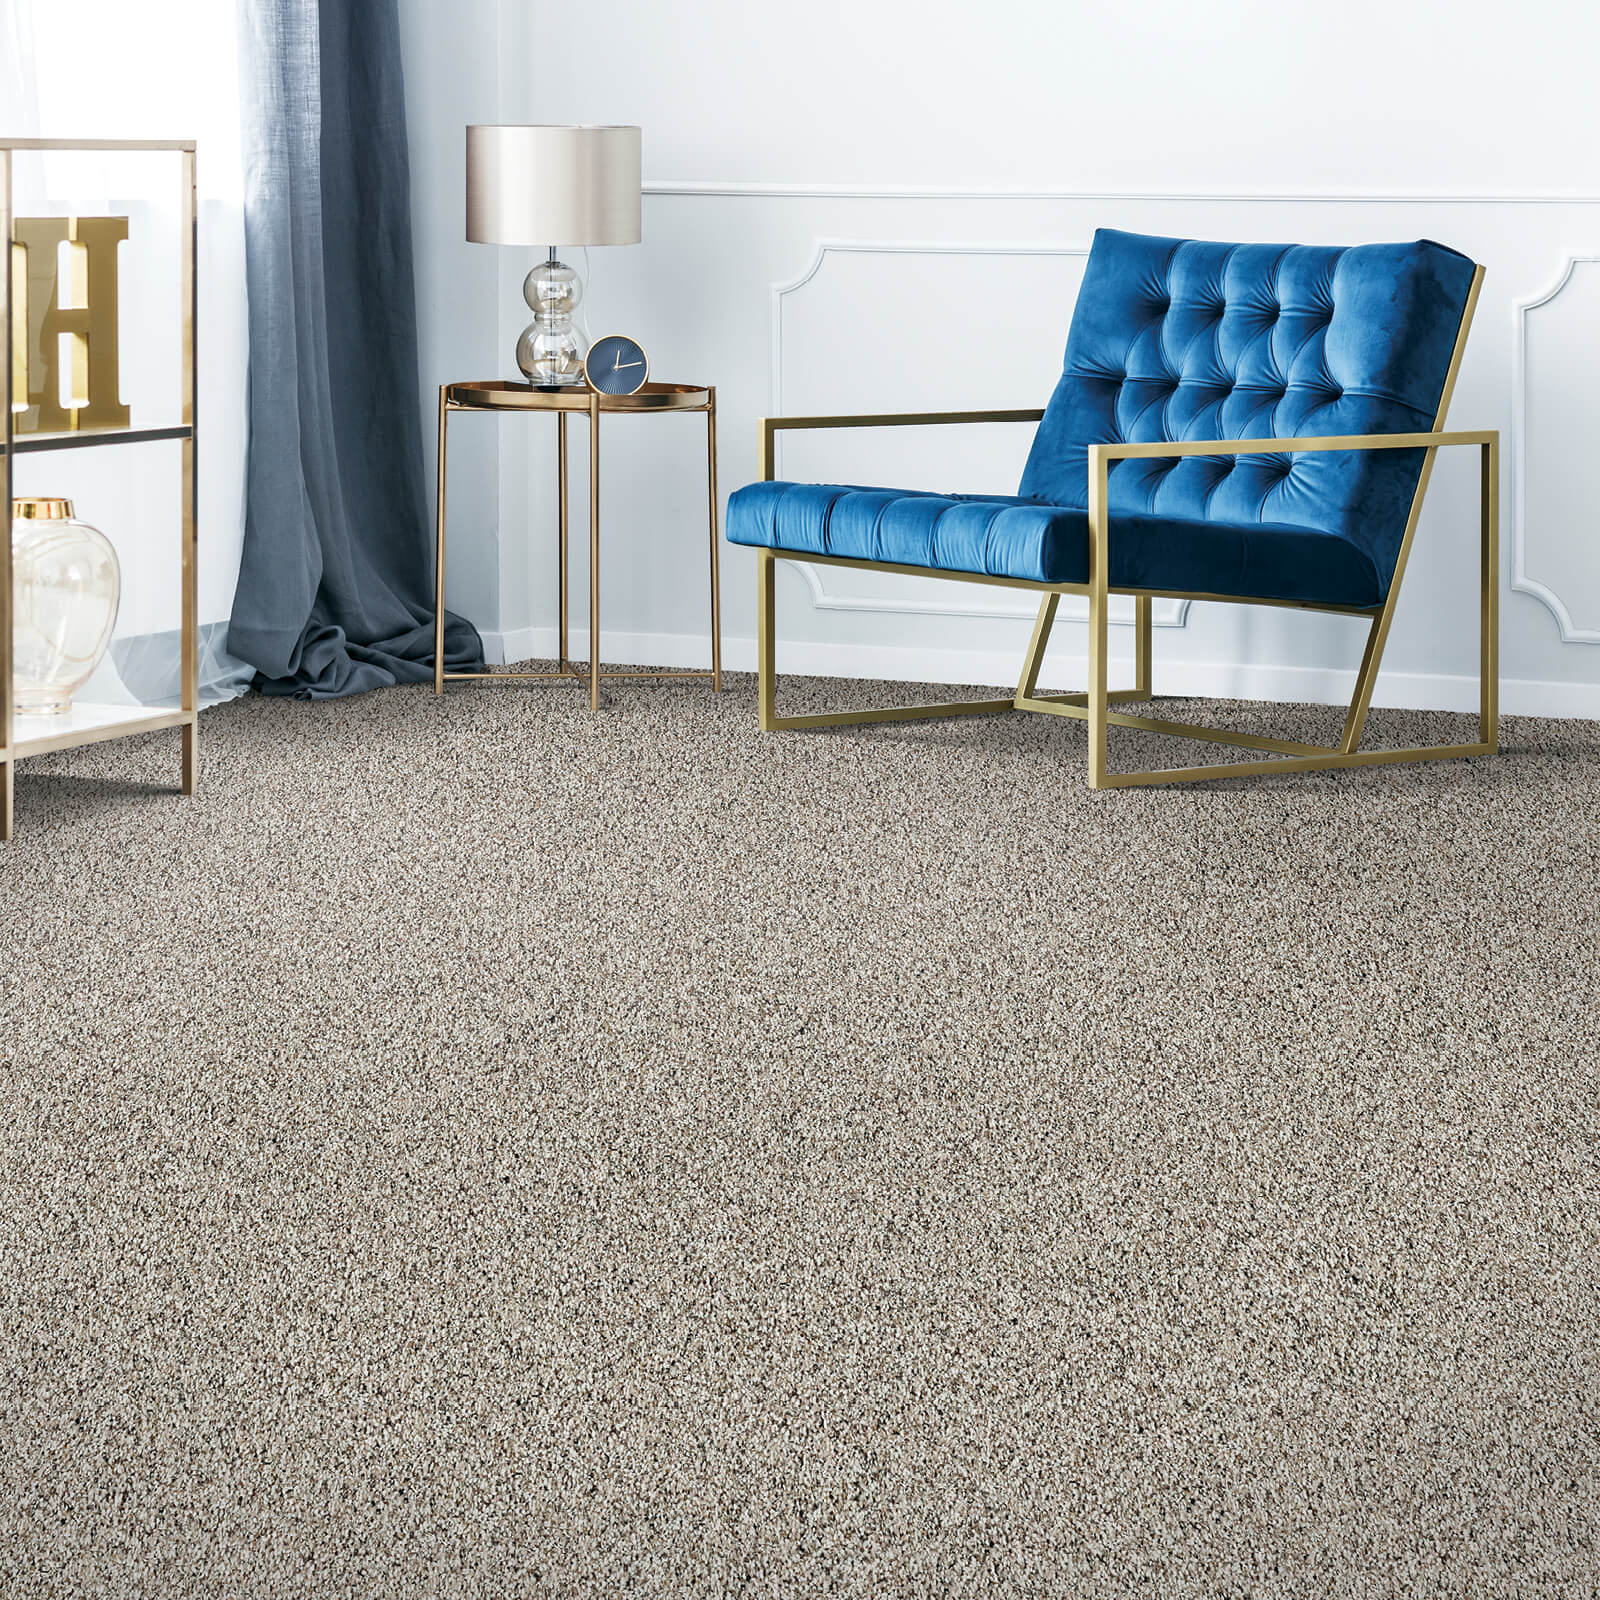 How to Choose a Carpet for Allergies | Staff Carpet